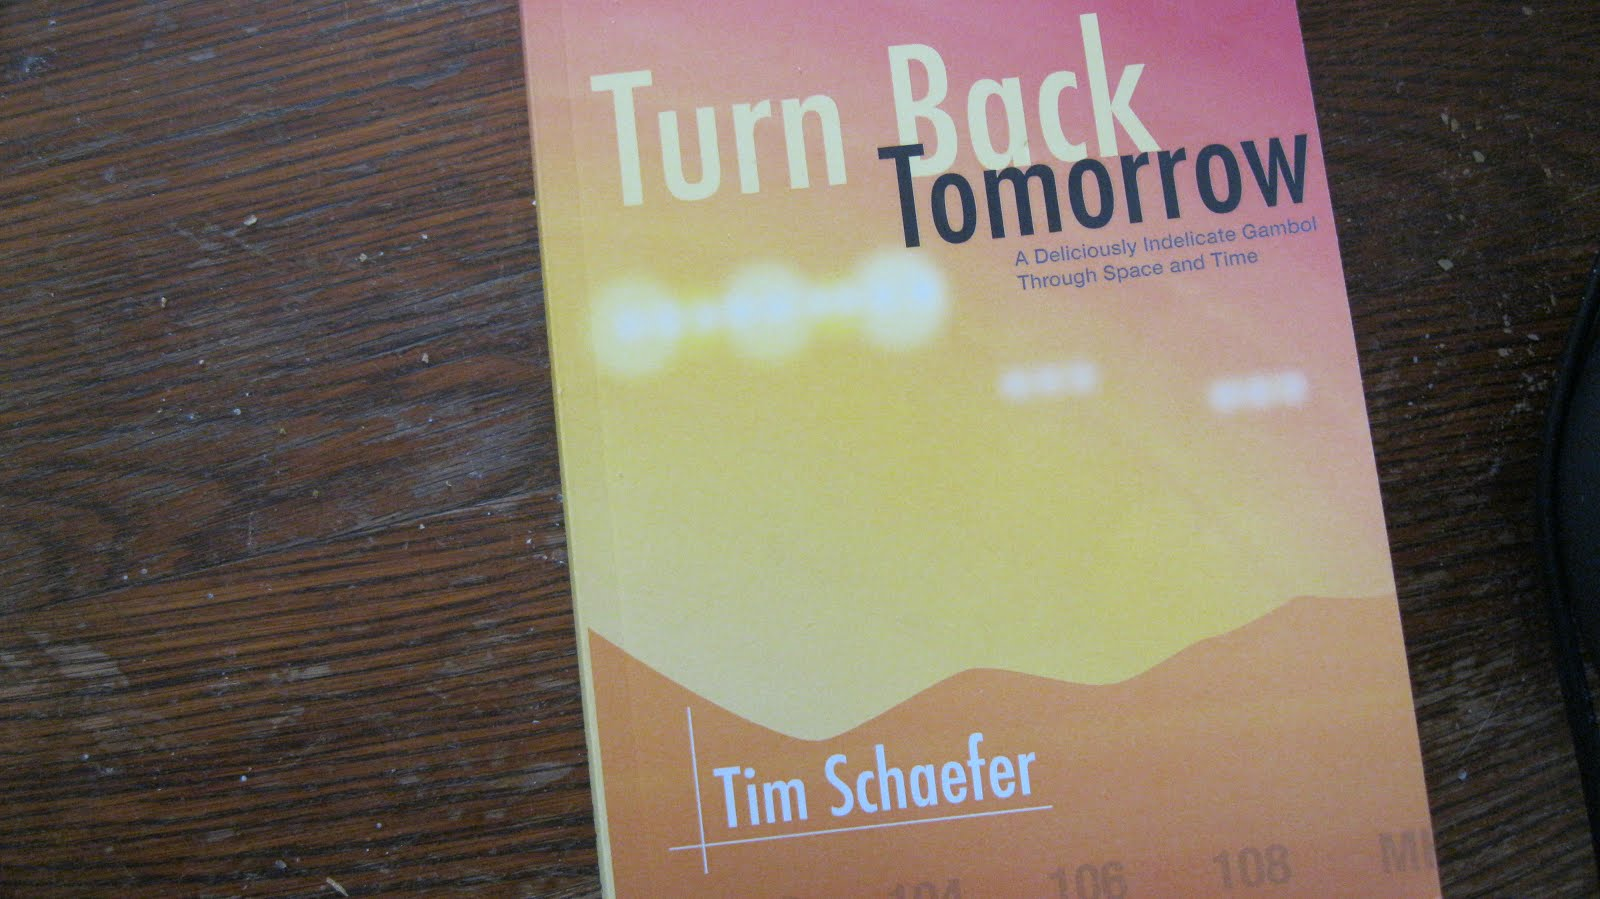 TIMMY'S NEW BOOK IS OUT--TURN BACK TOMORROW--AVAILABLE FROM AMAZON.COM